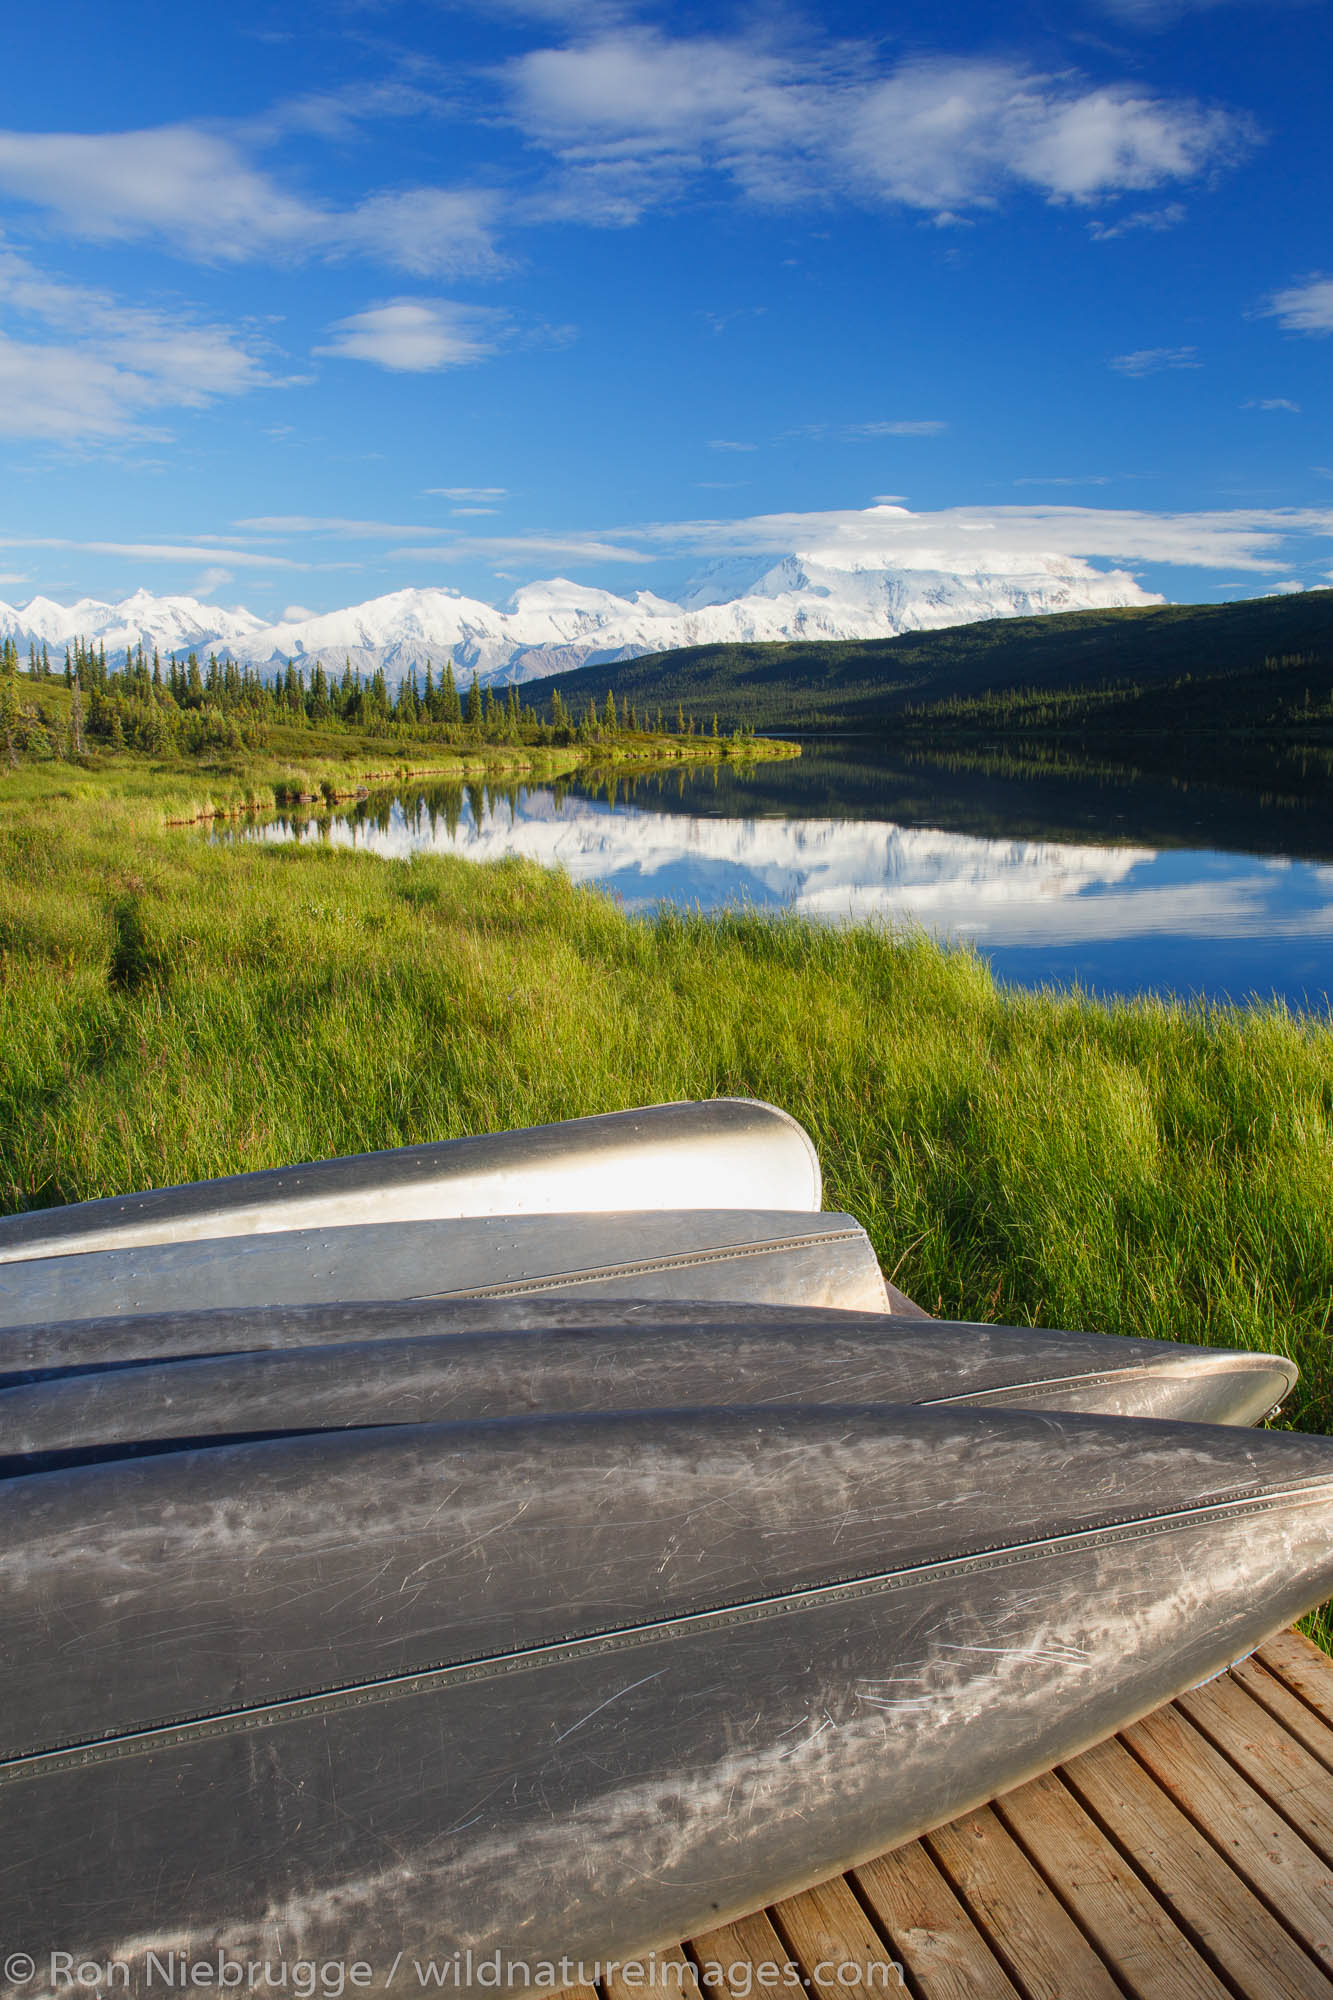 Canoes in front of Mt. McKinley, also known as Denali, from Wonder Lake, Denali National Park, Alaska.